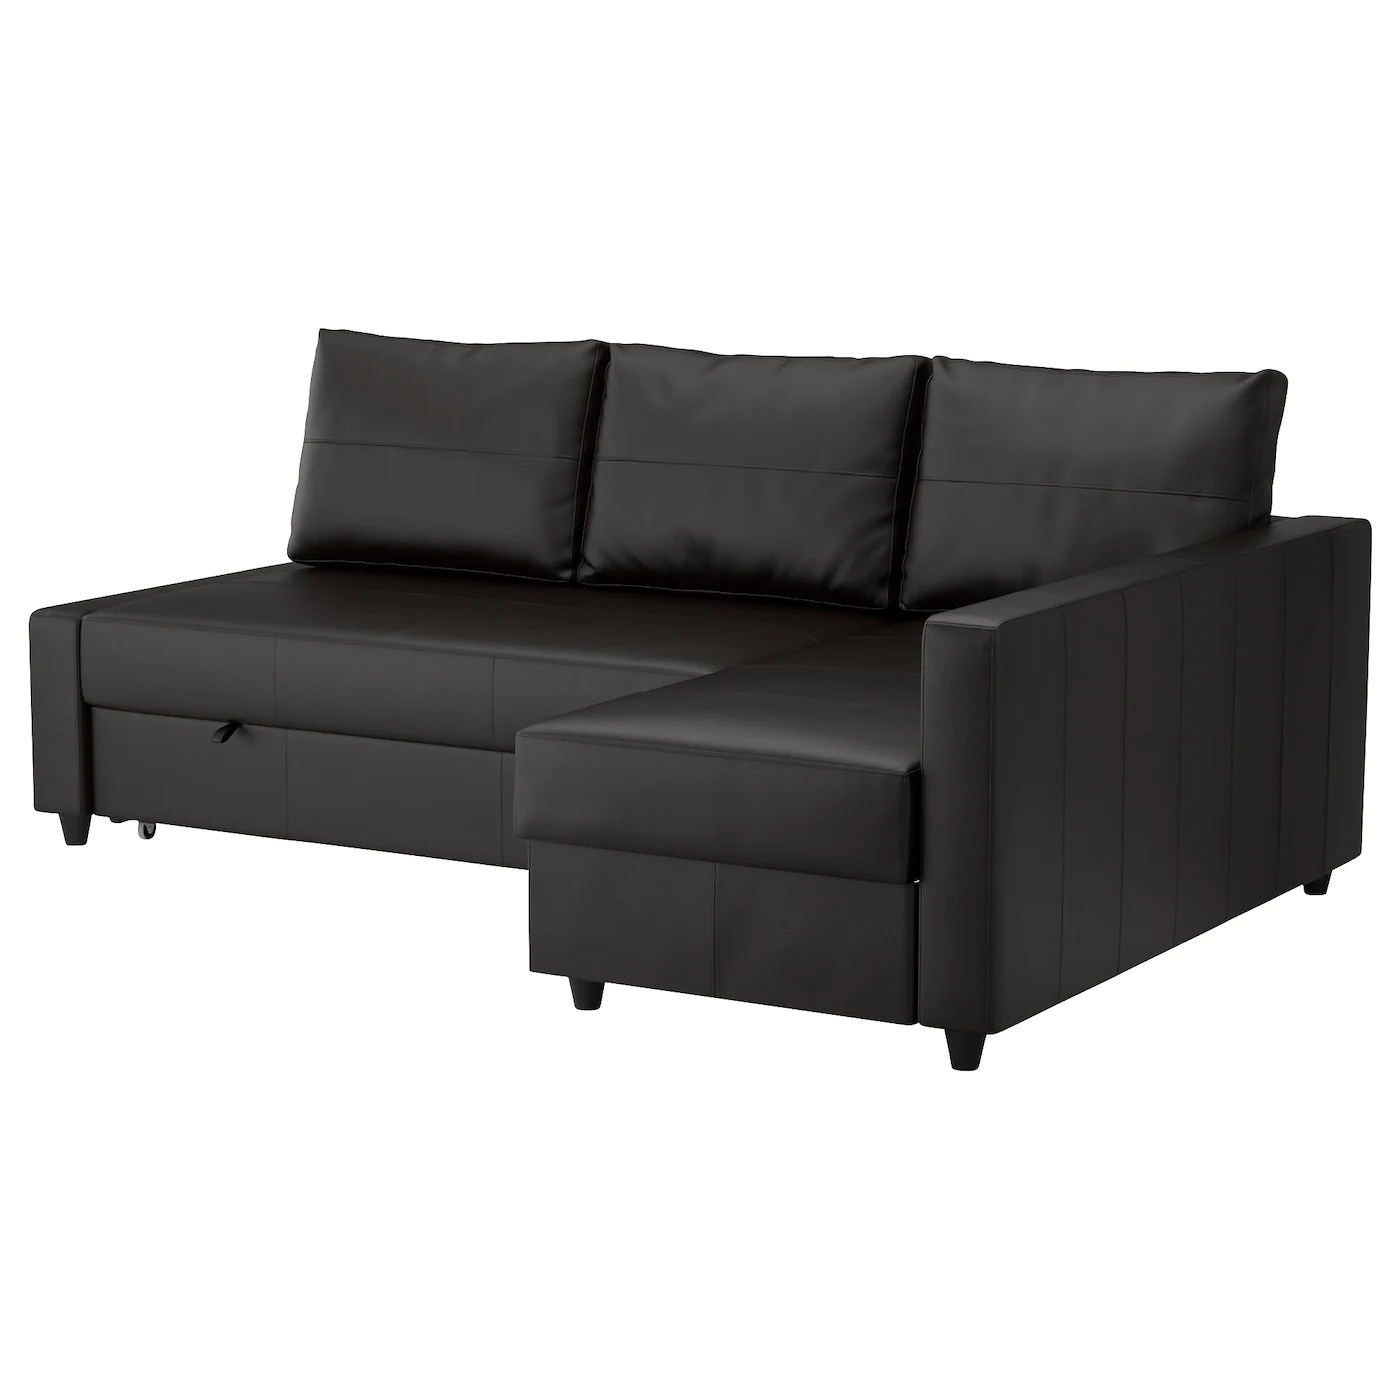 sofa chair ikea gray club friheten corner bed with storage bomstad black